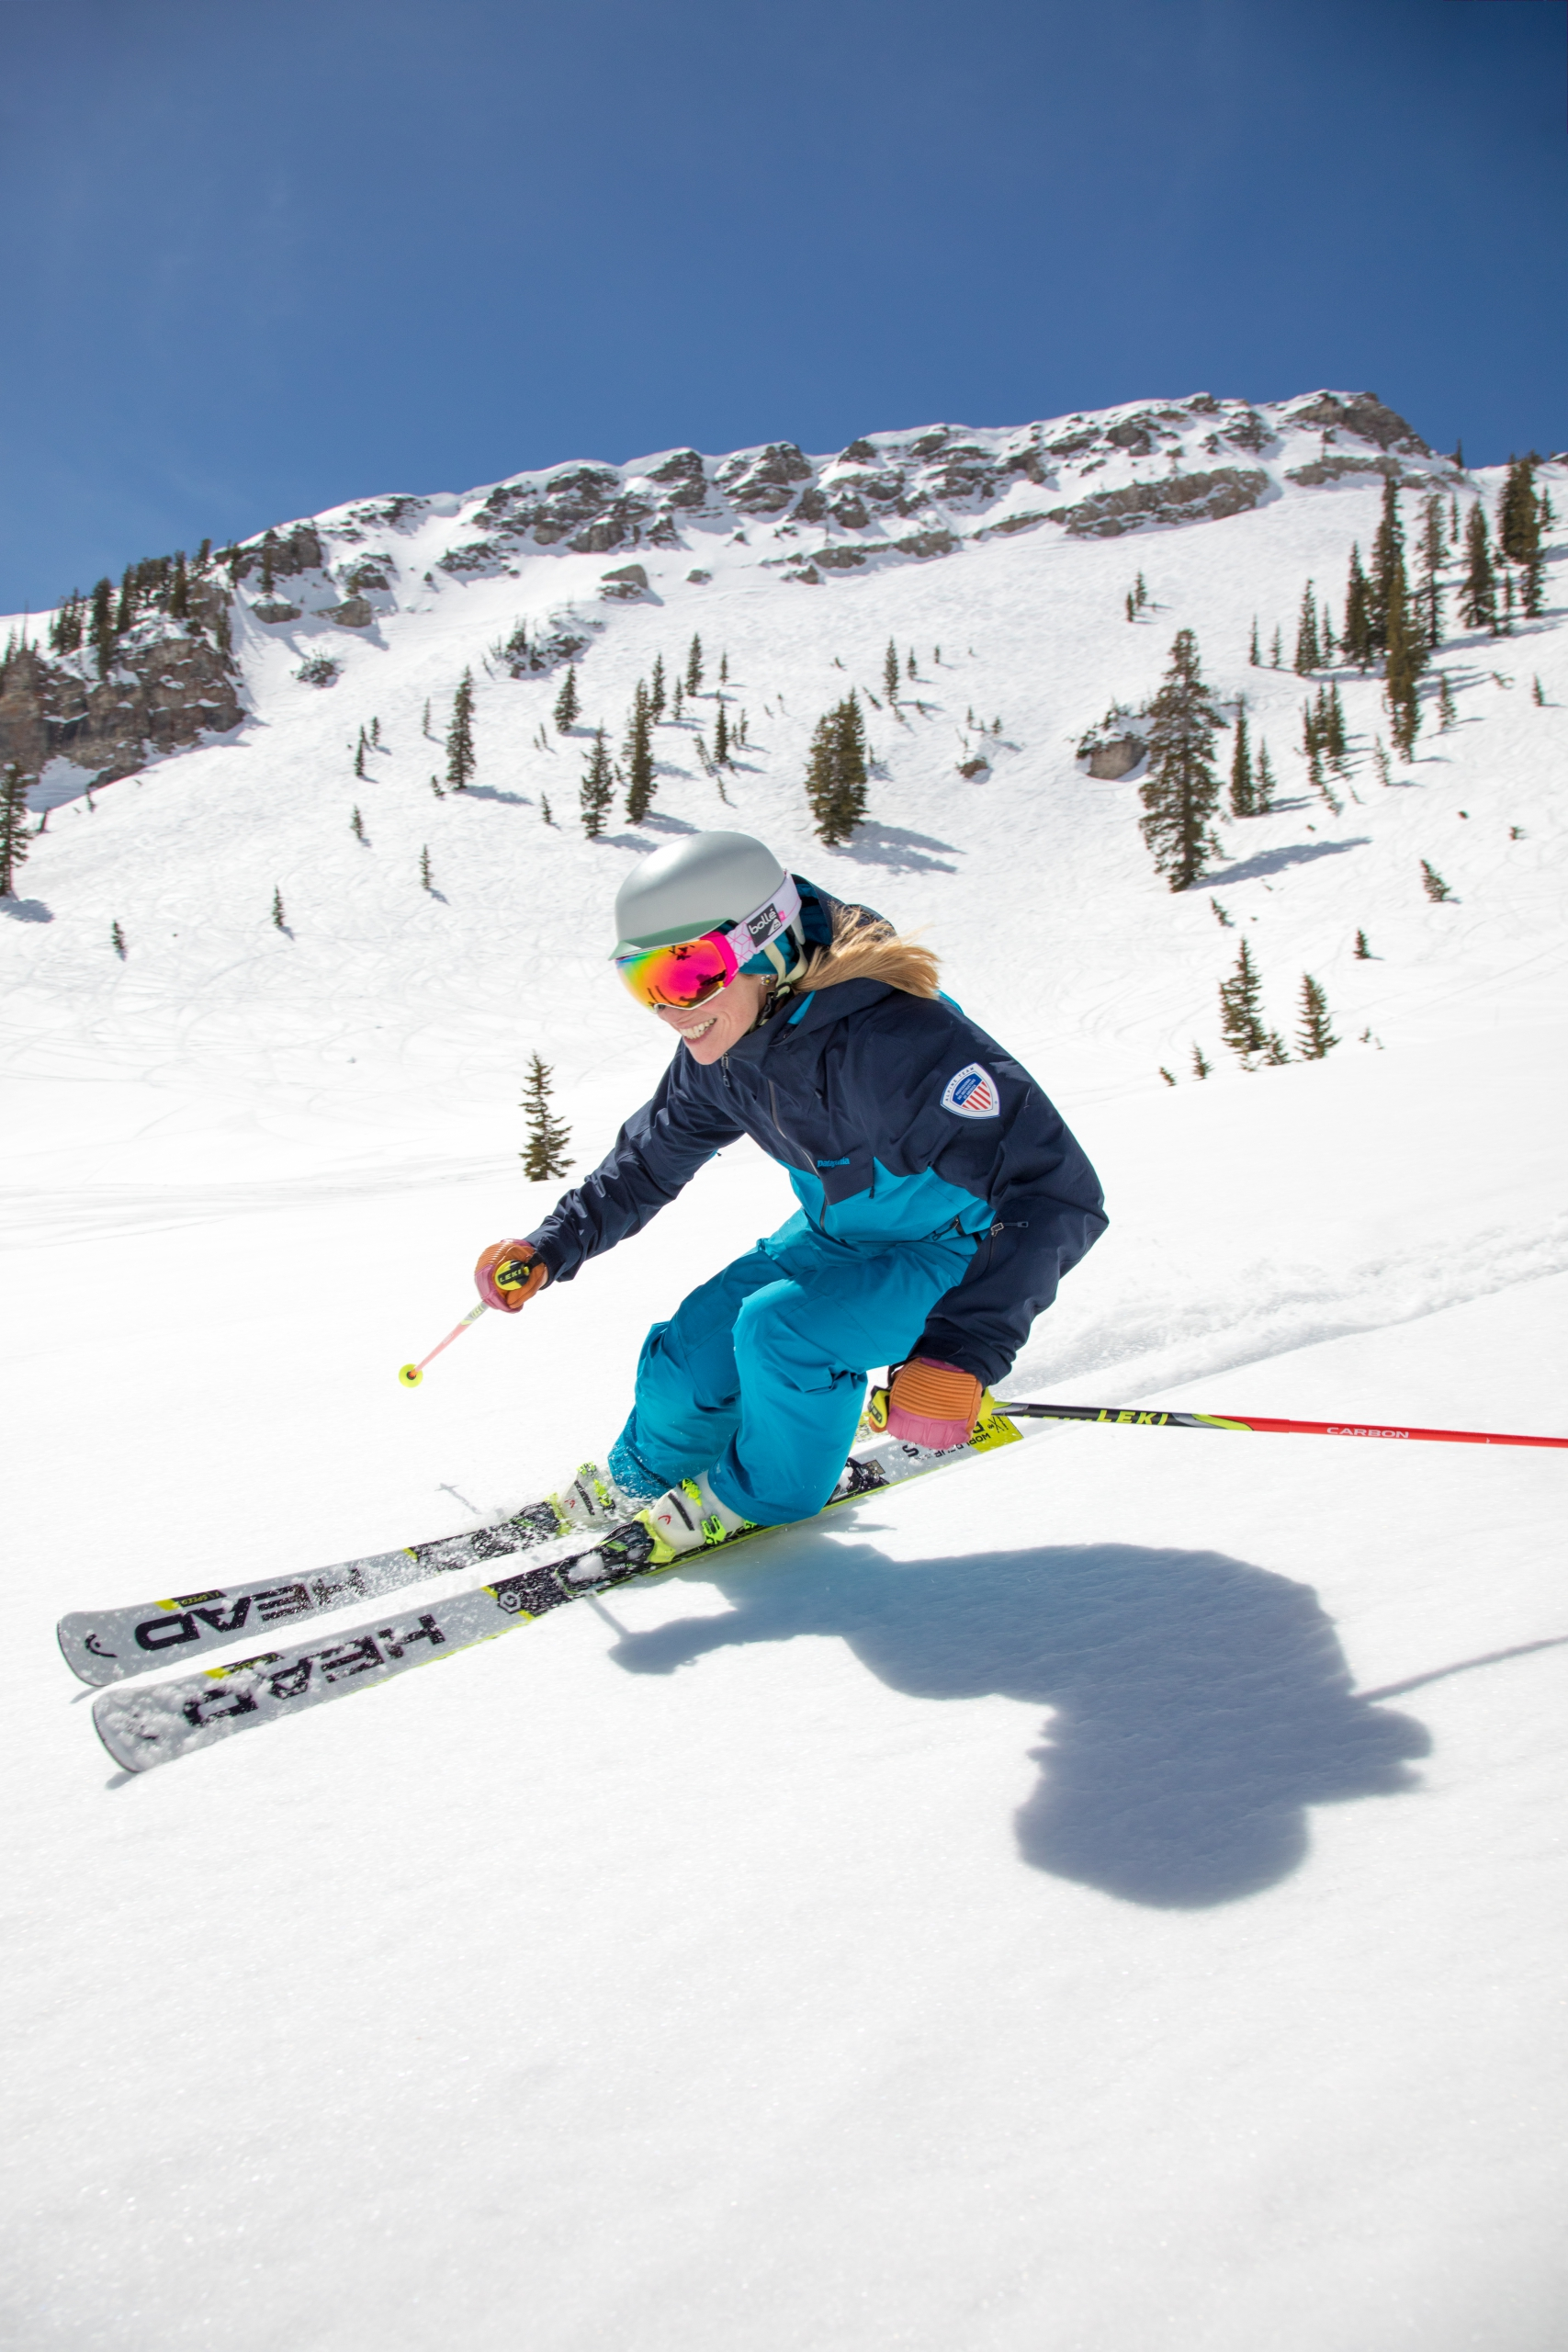 PSIA Alpine Team member Robin Barnes carves on her skis down a slope